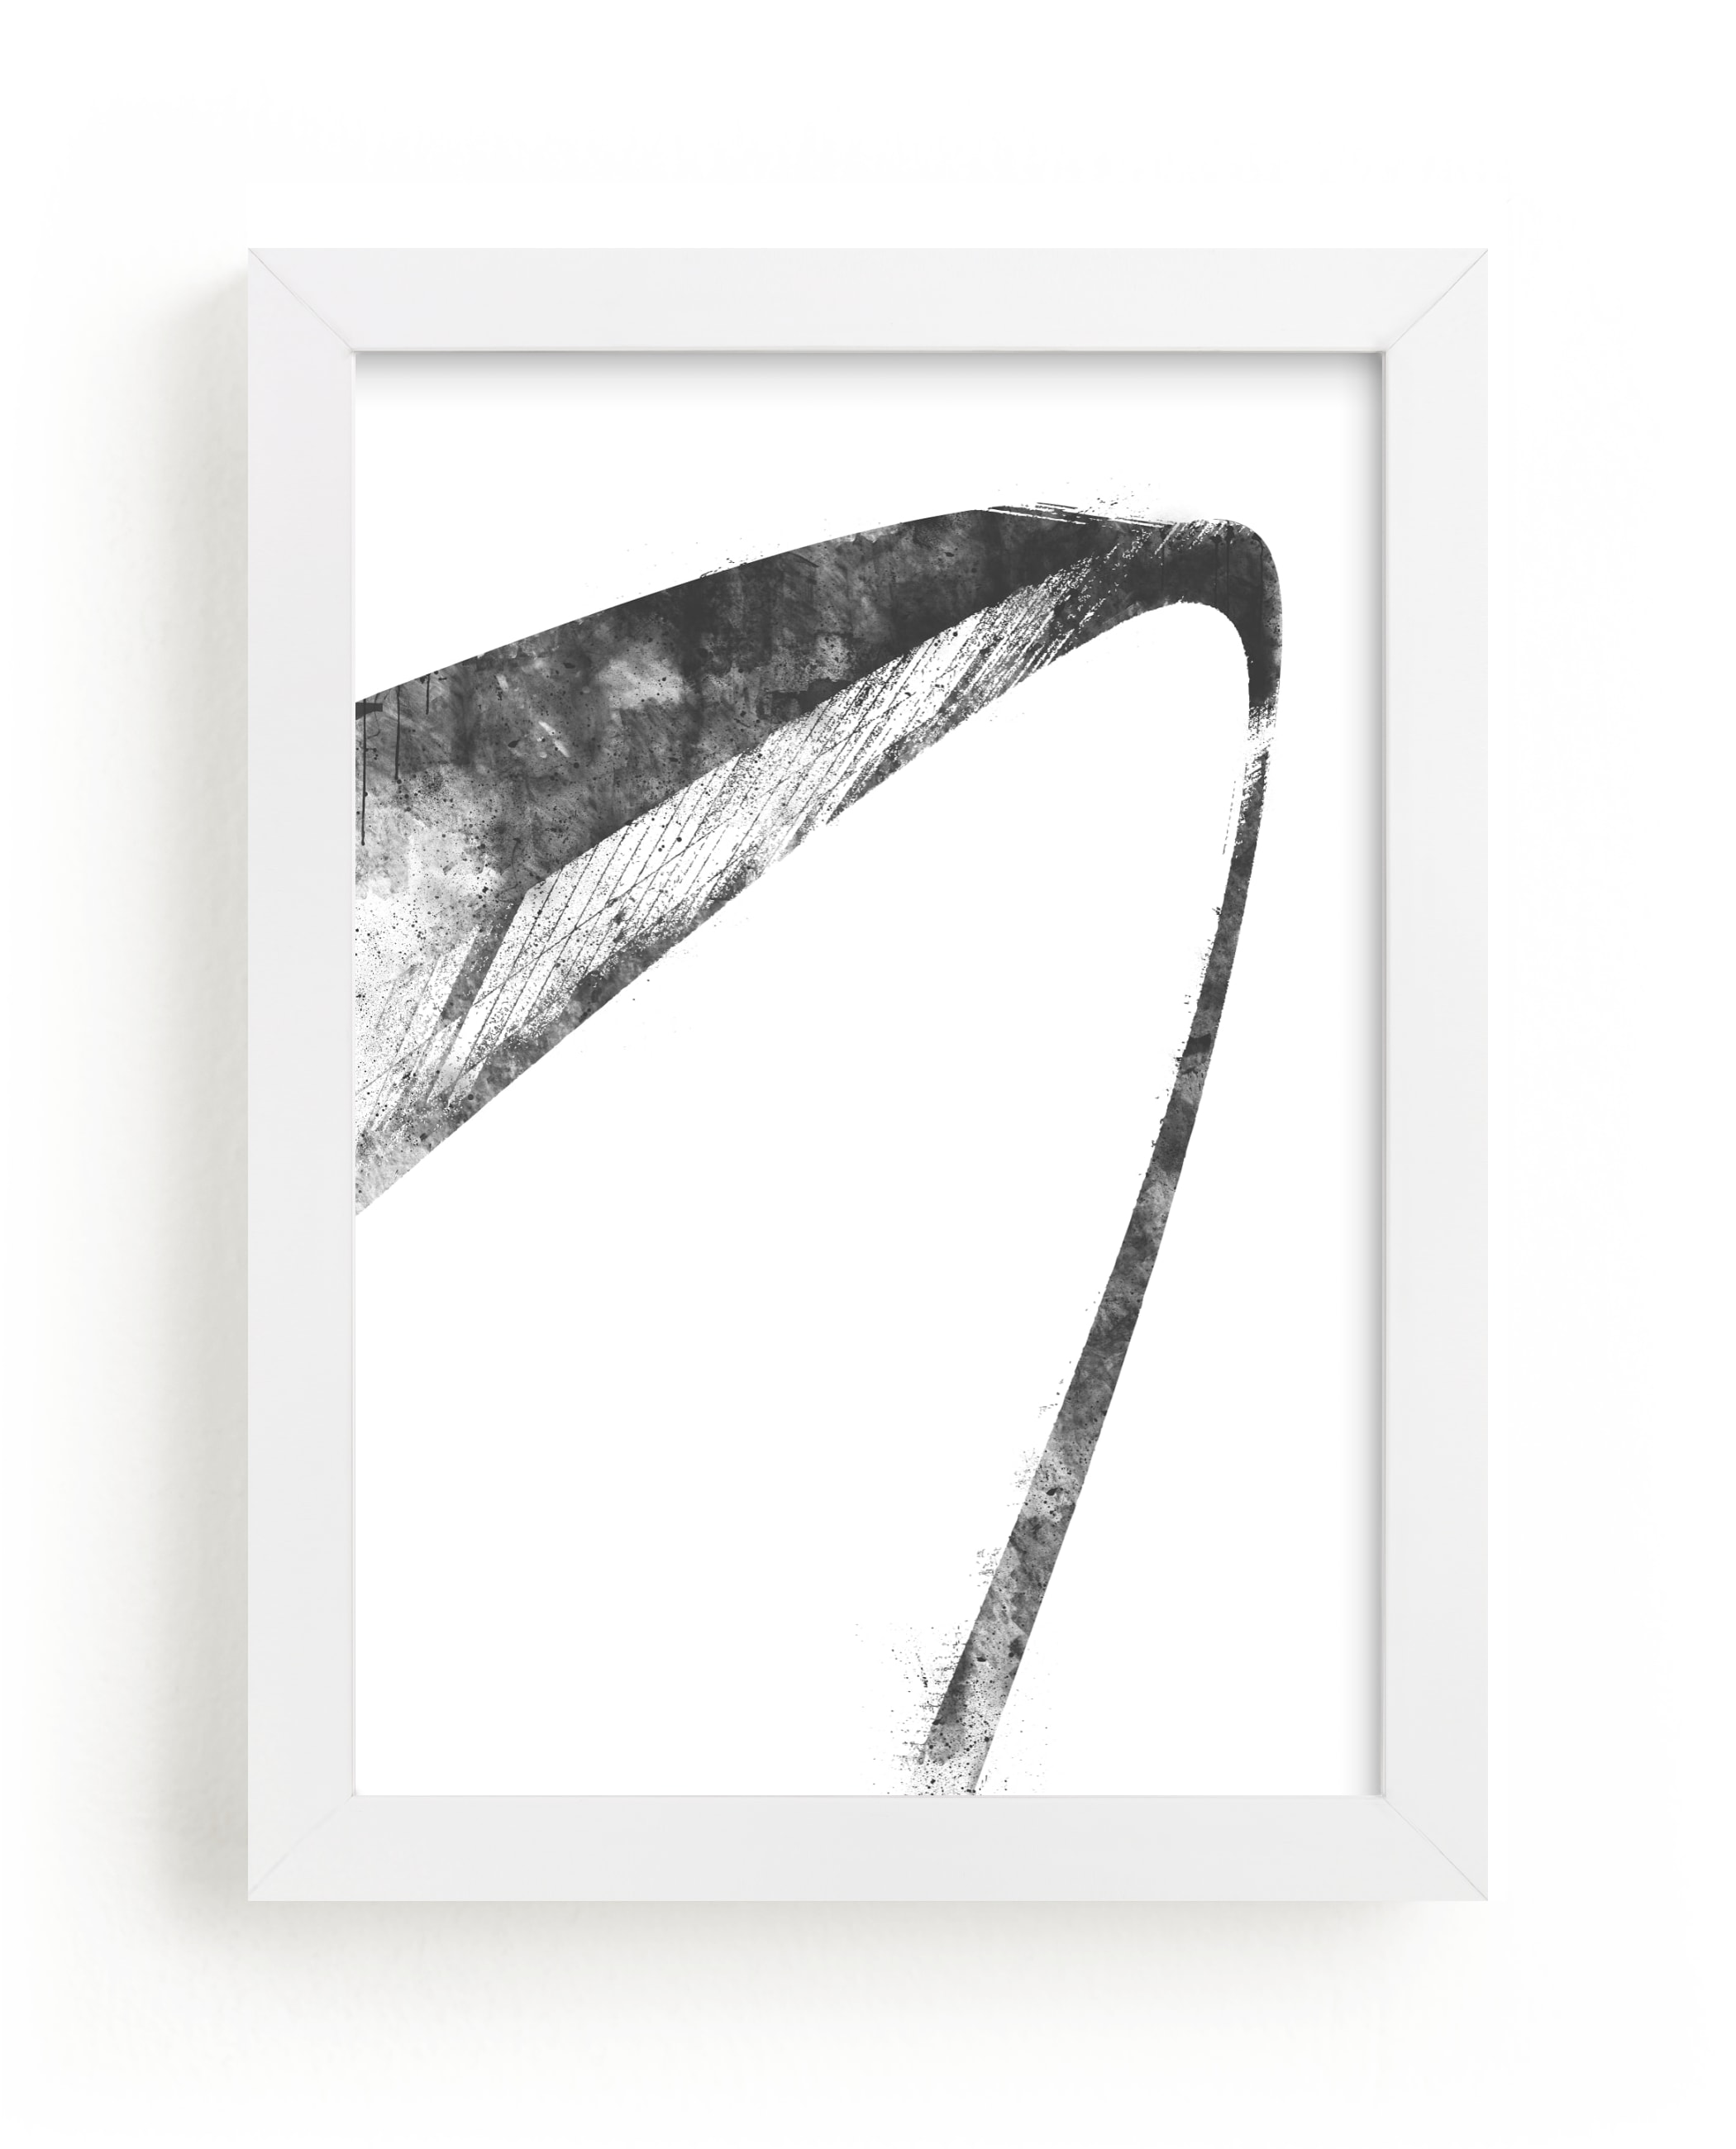 St Louis Arch 11 x 14 Framed Pencil Drawing